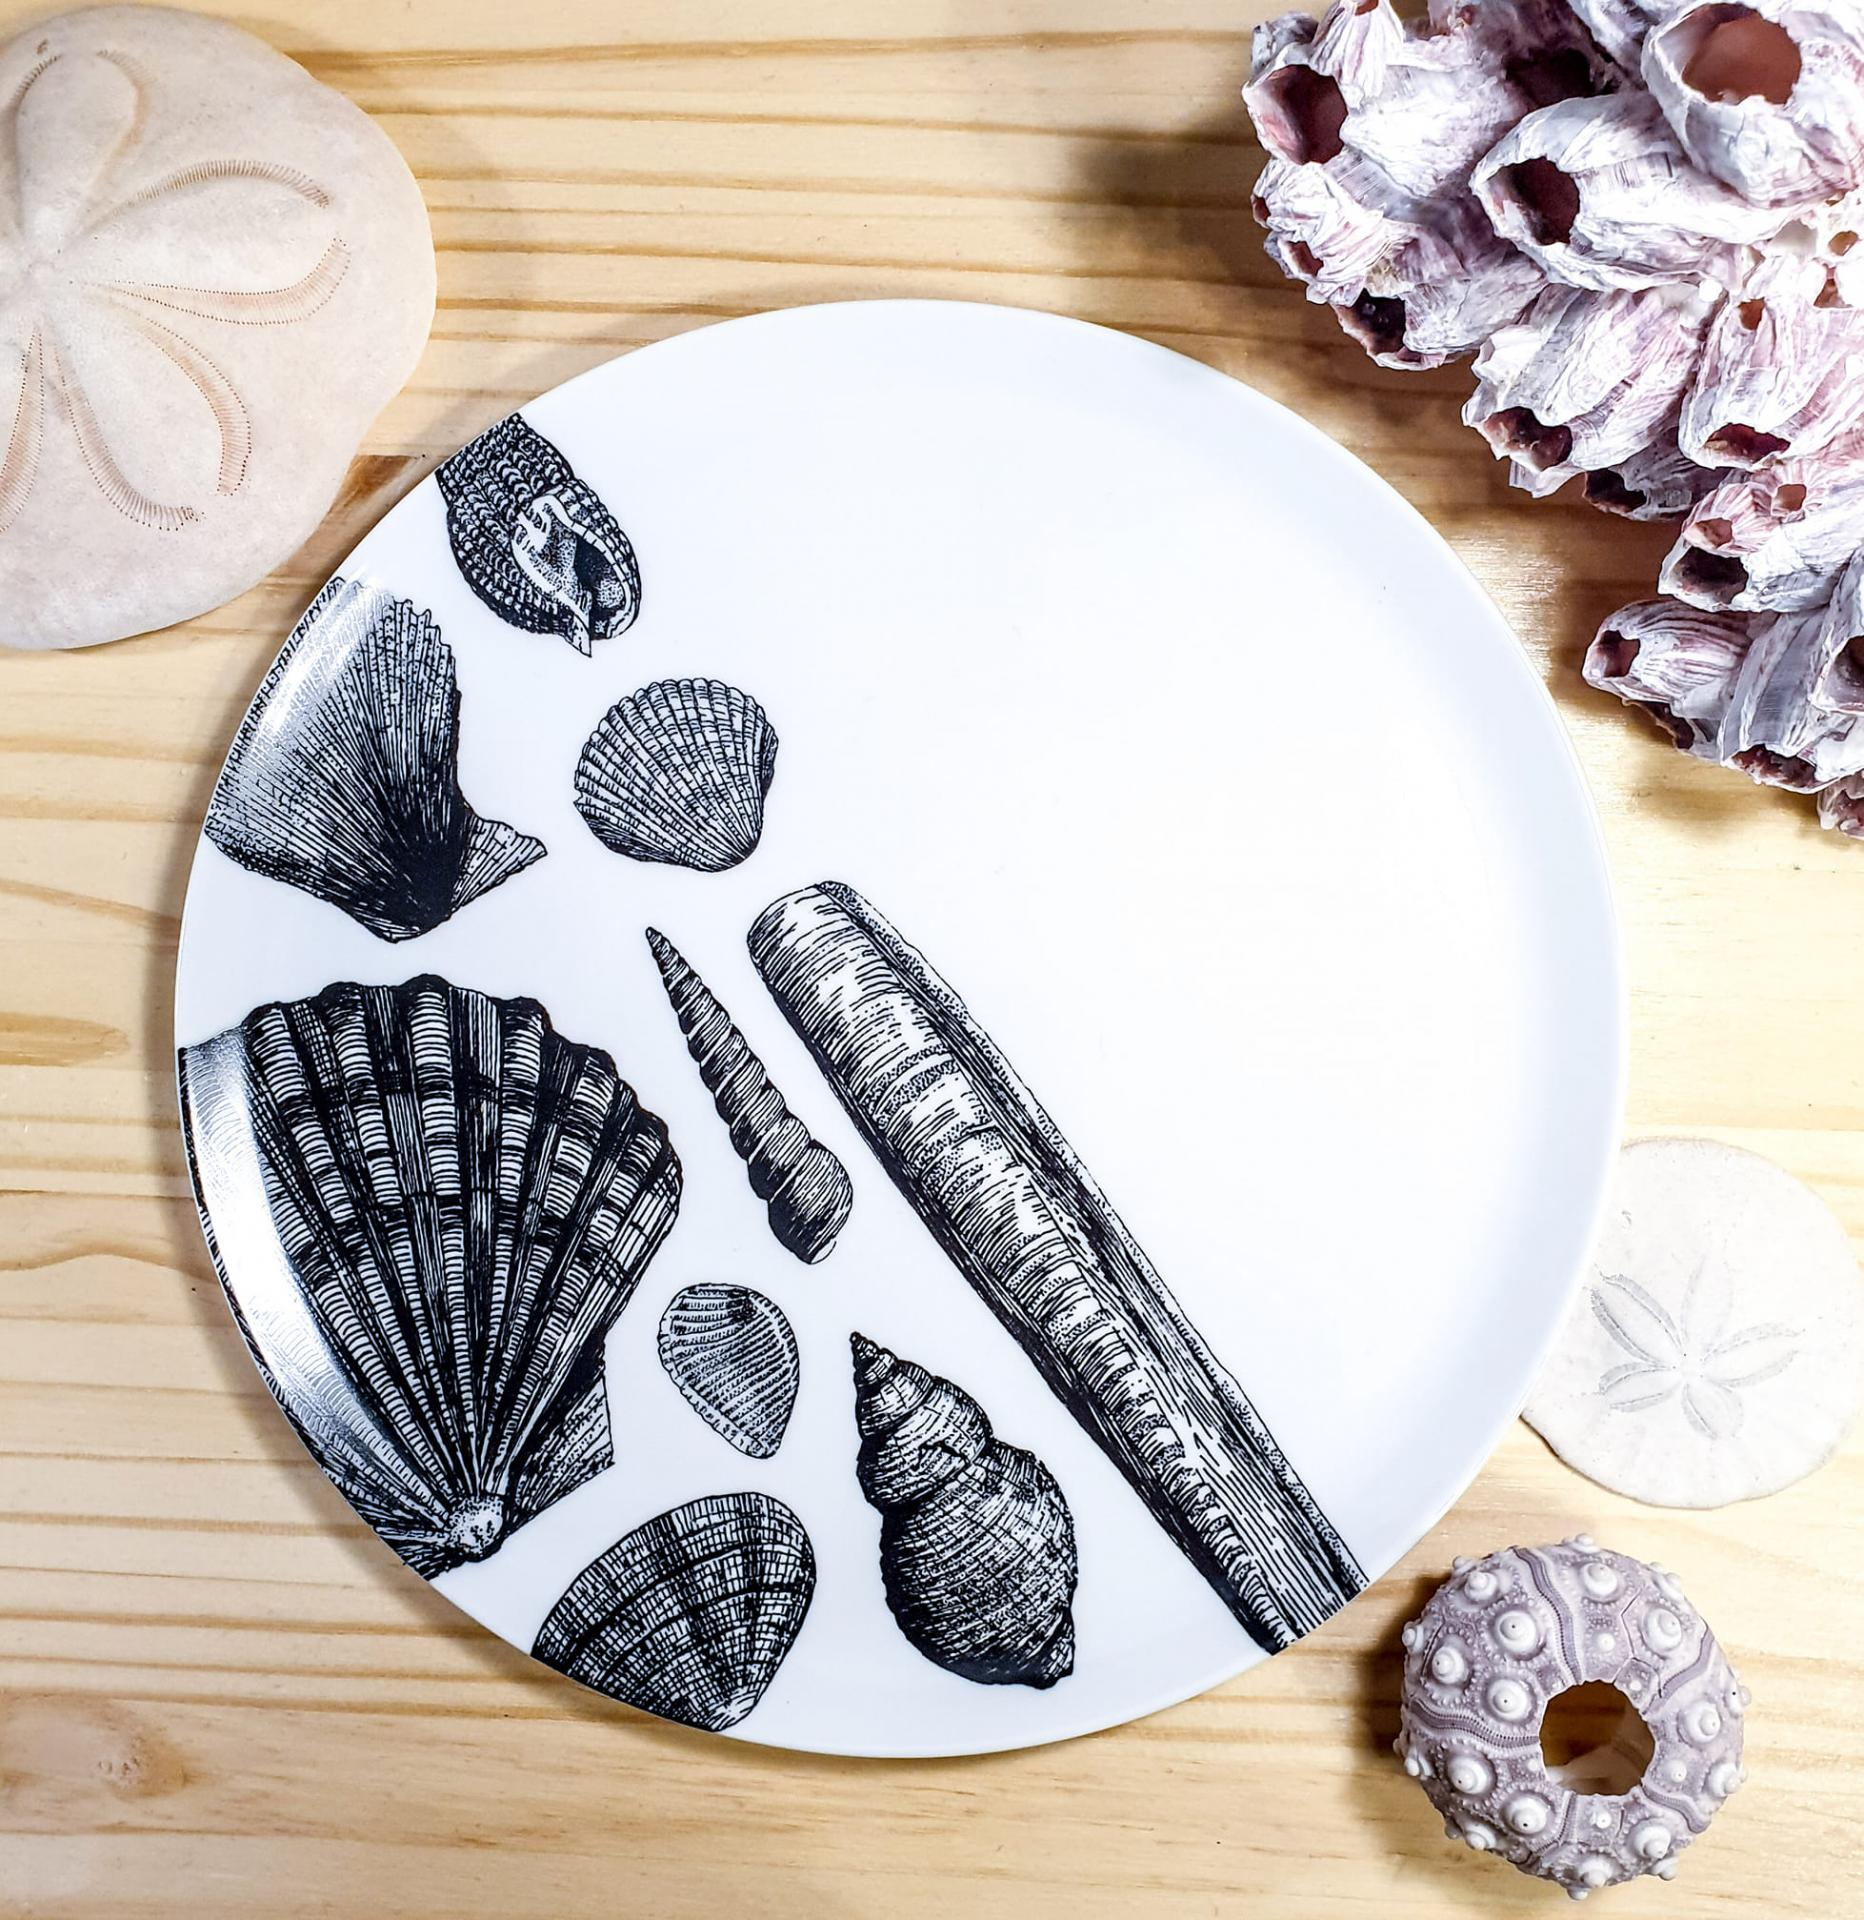 Assiettes coquillages